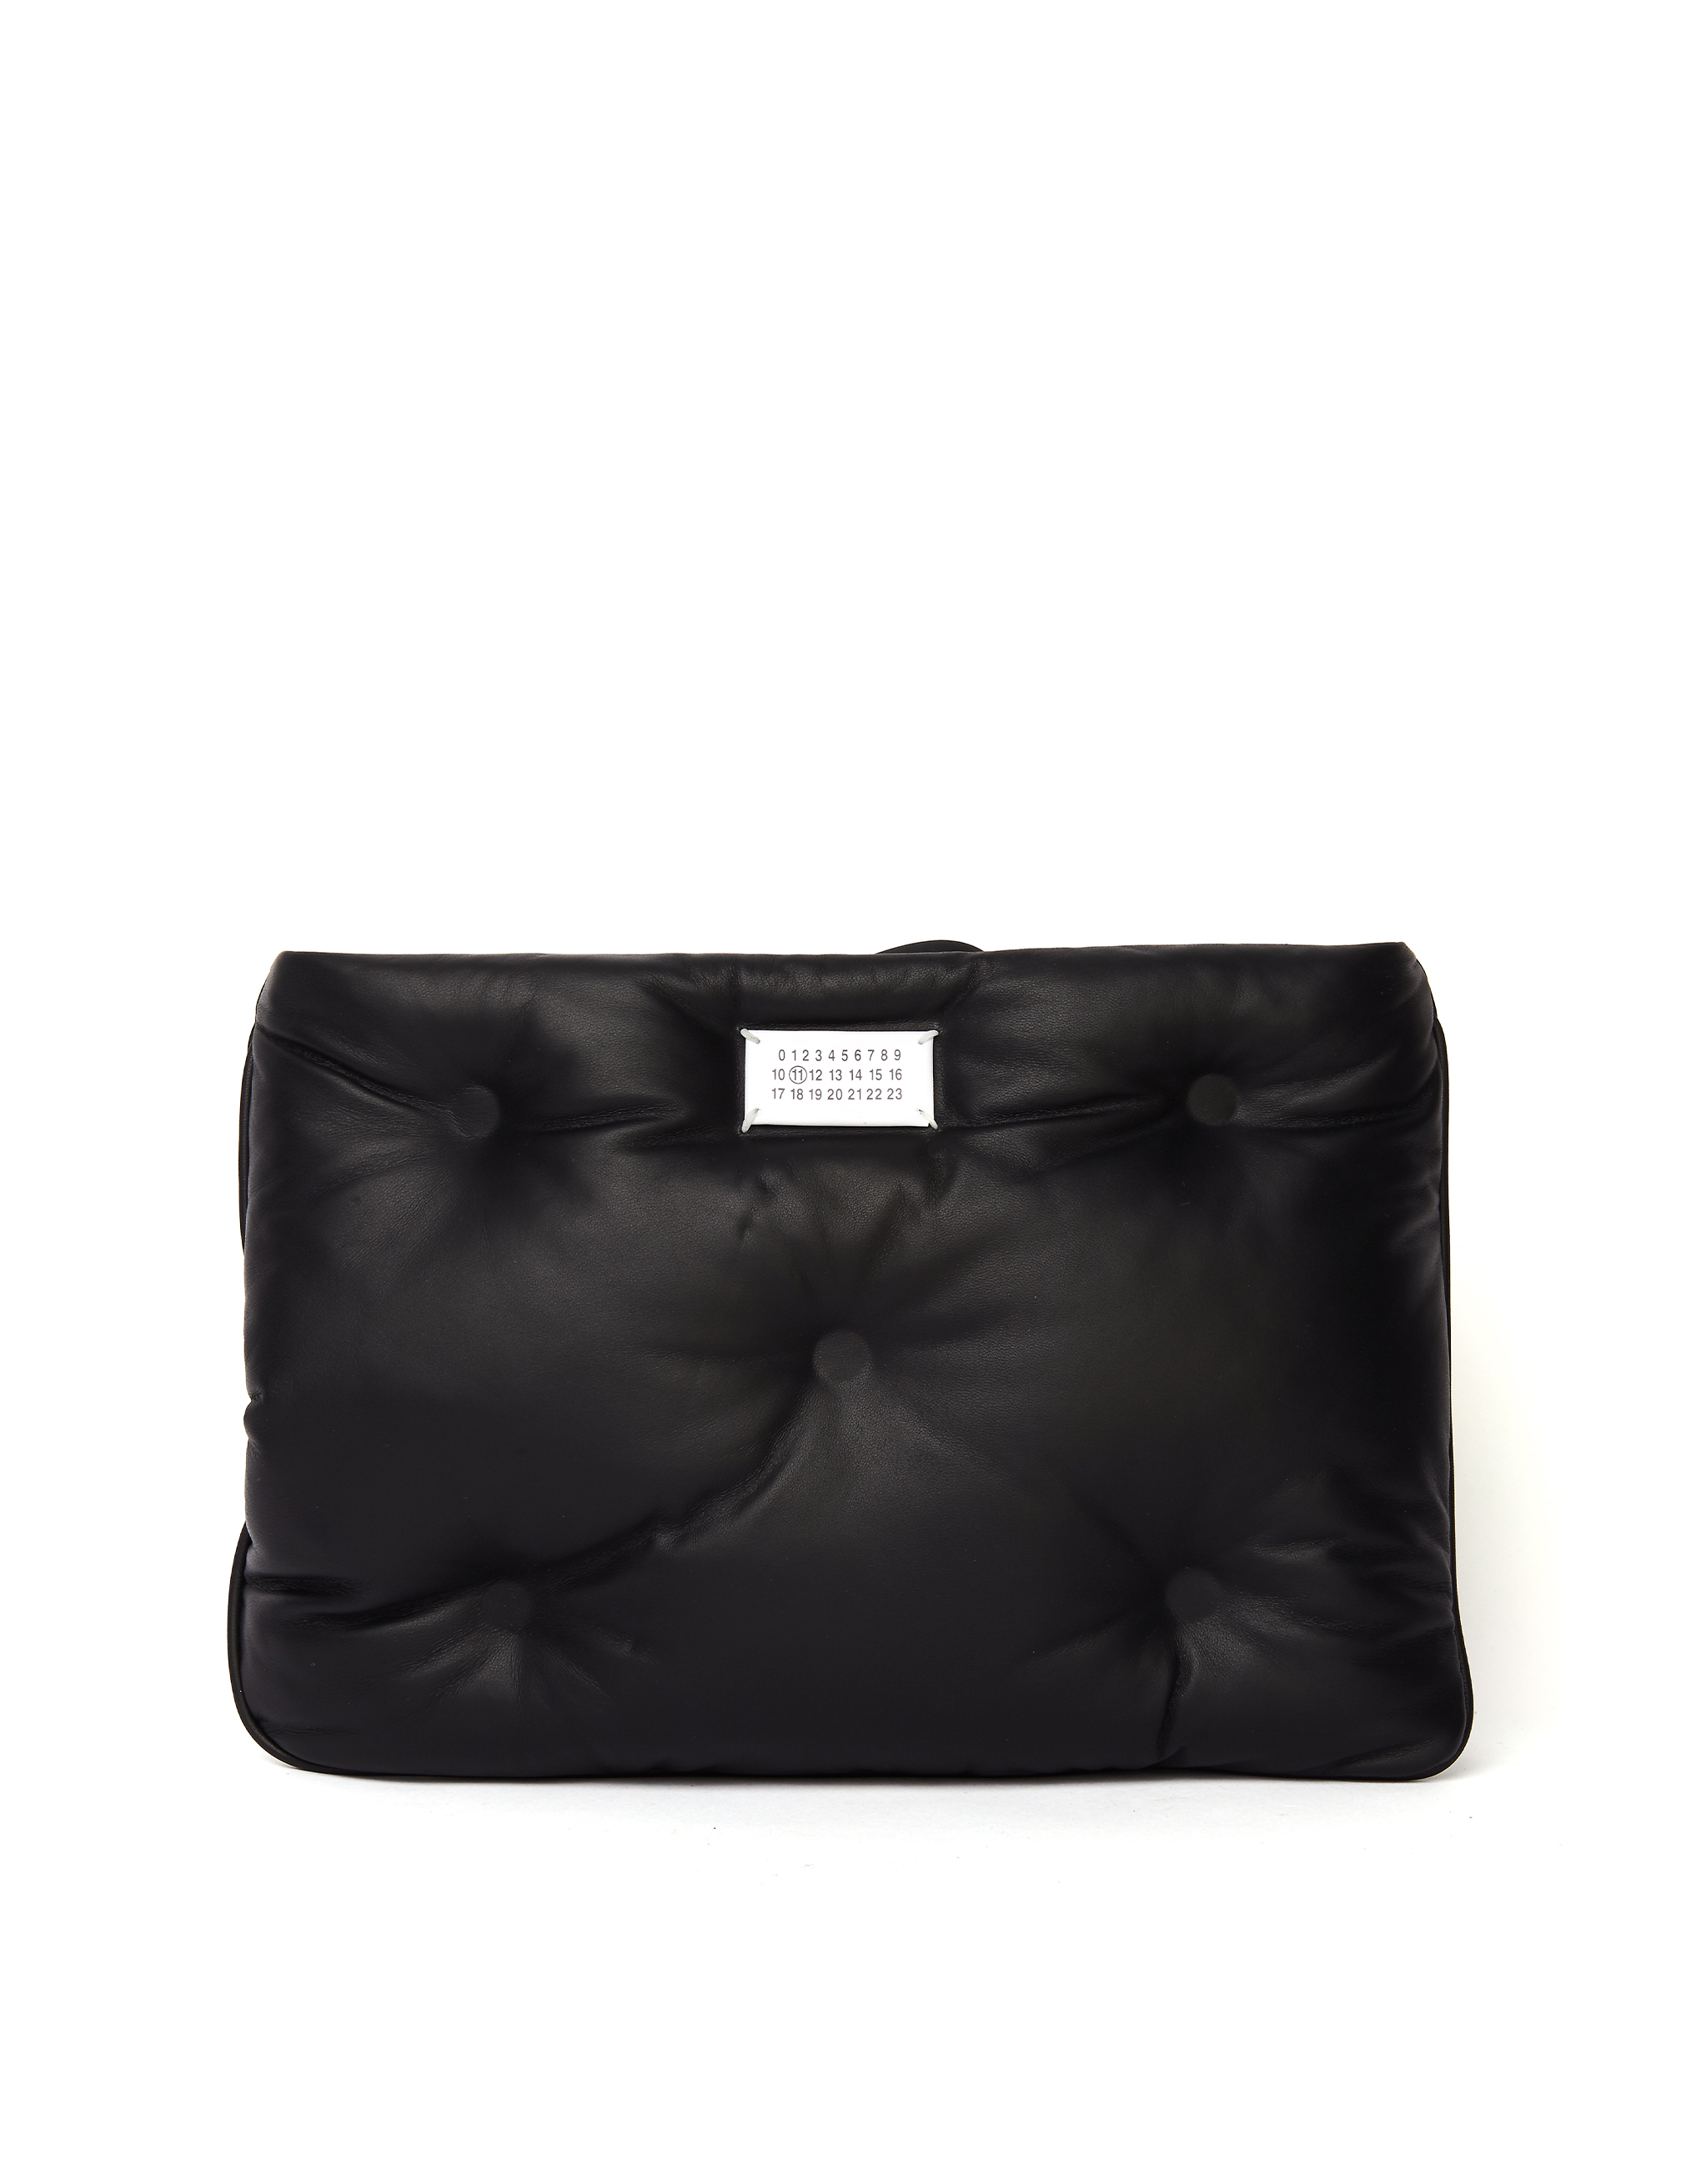 Maison Margiela Black Glam Slam Clutch Bag